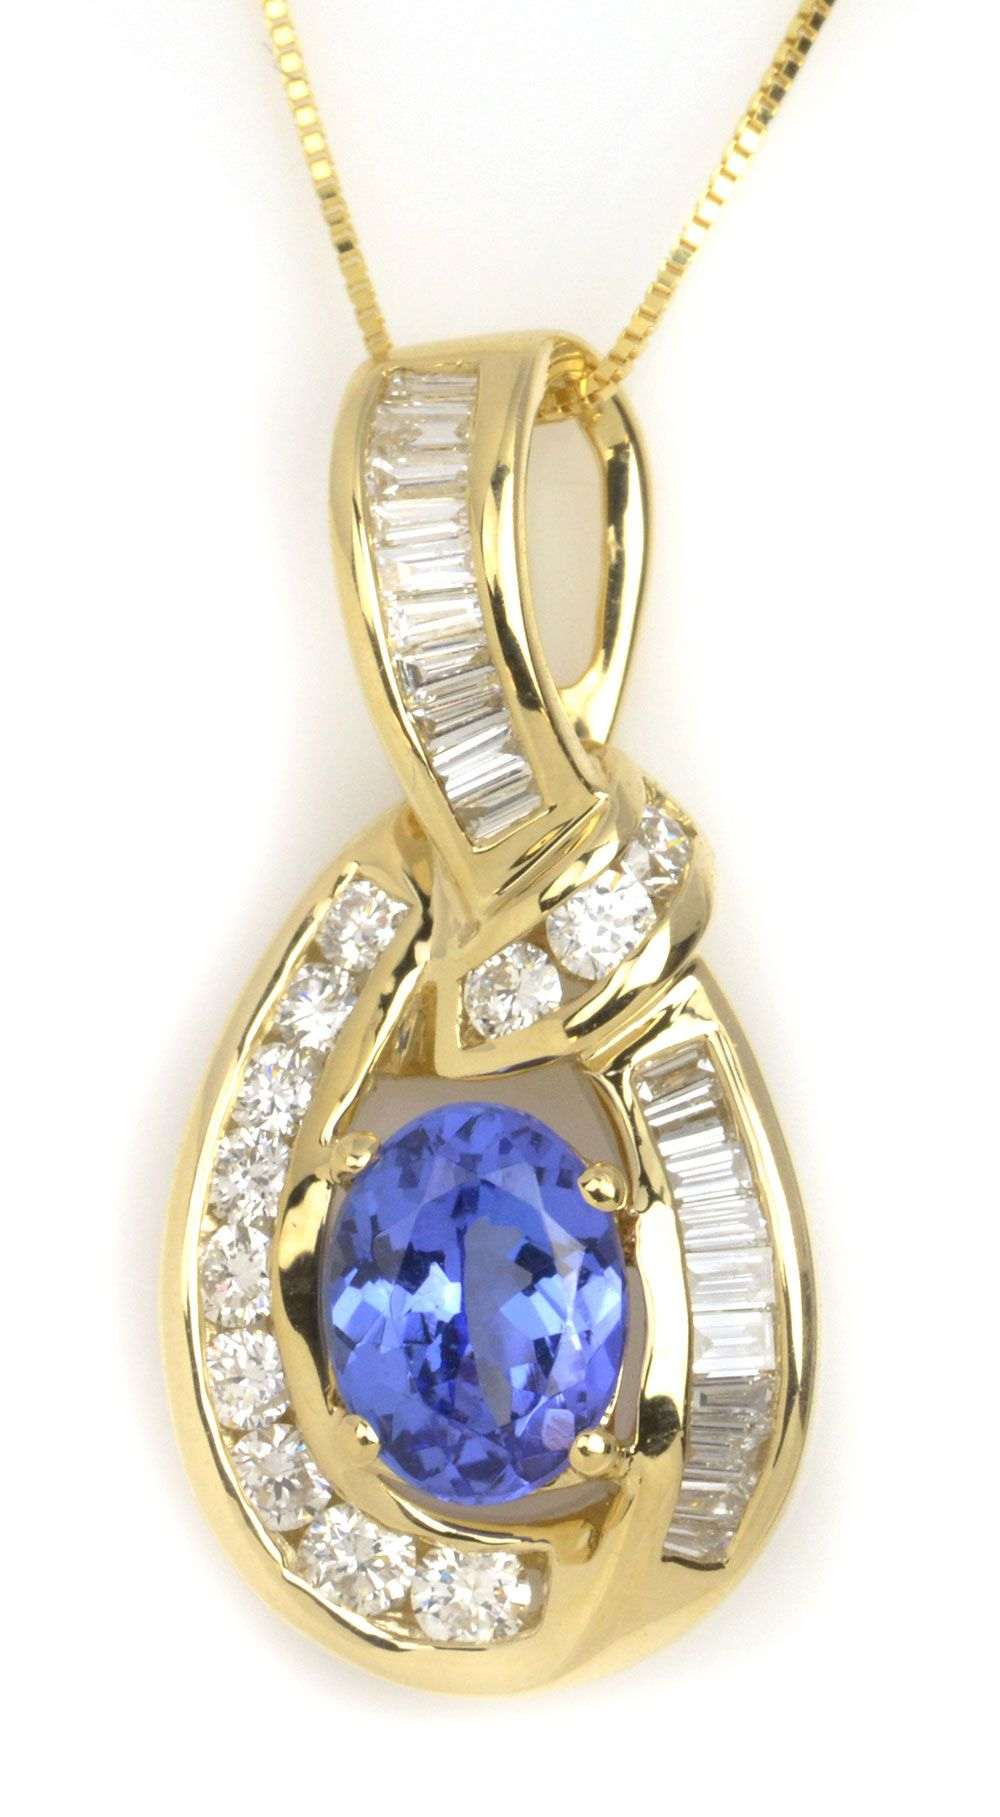 1.22 ct Tanzanite Oval & 0.75 ctw Diamond Round & Baguette 14K Yellow Gold Pendant Length 18 - Gem Shopping Network